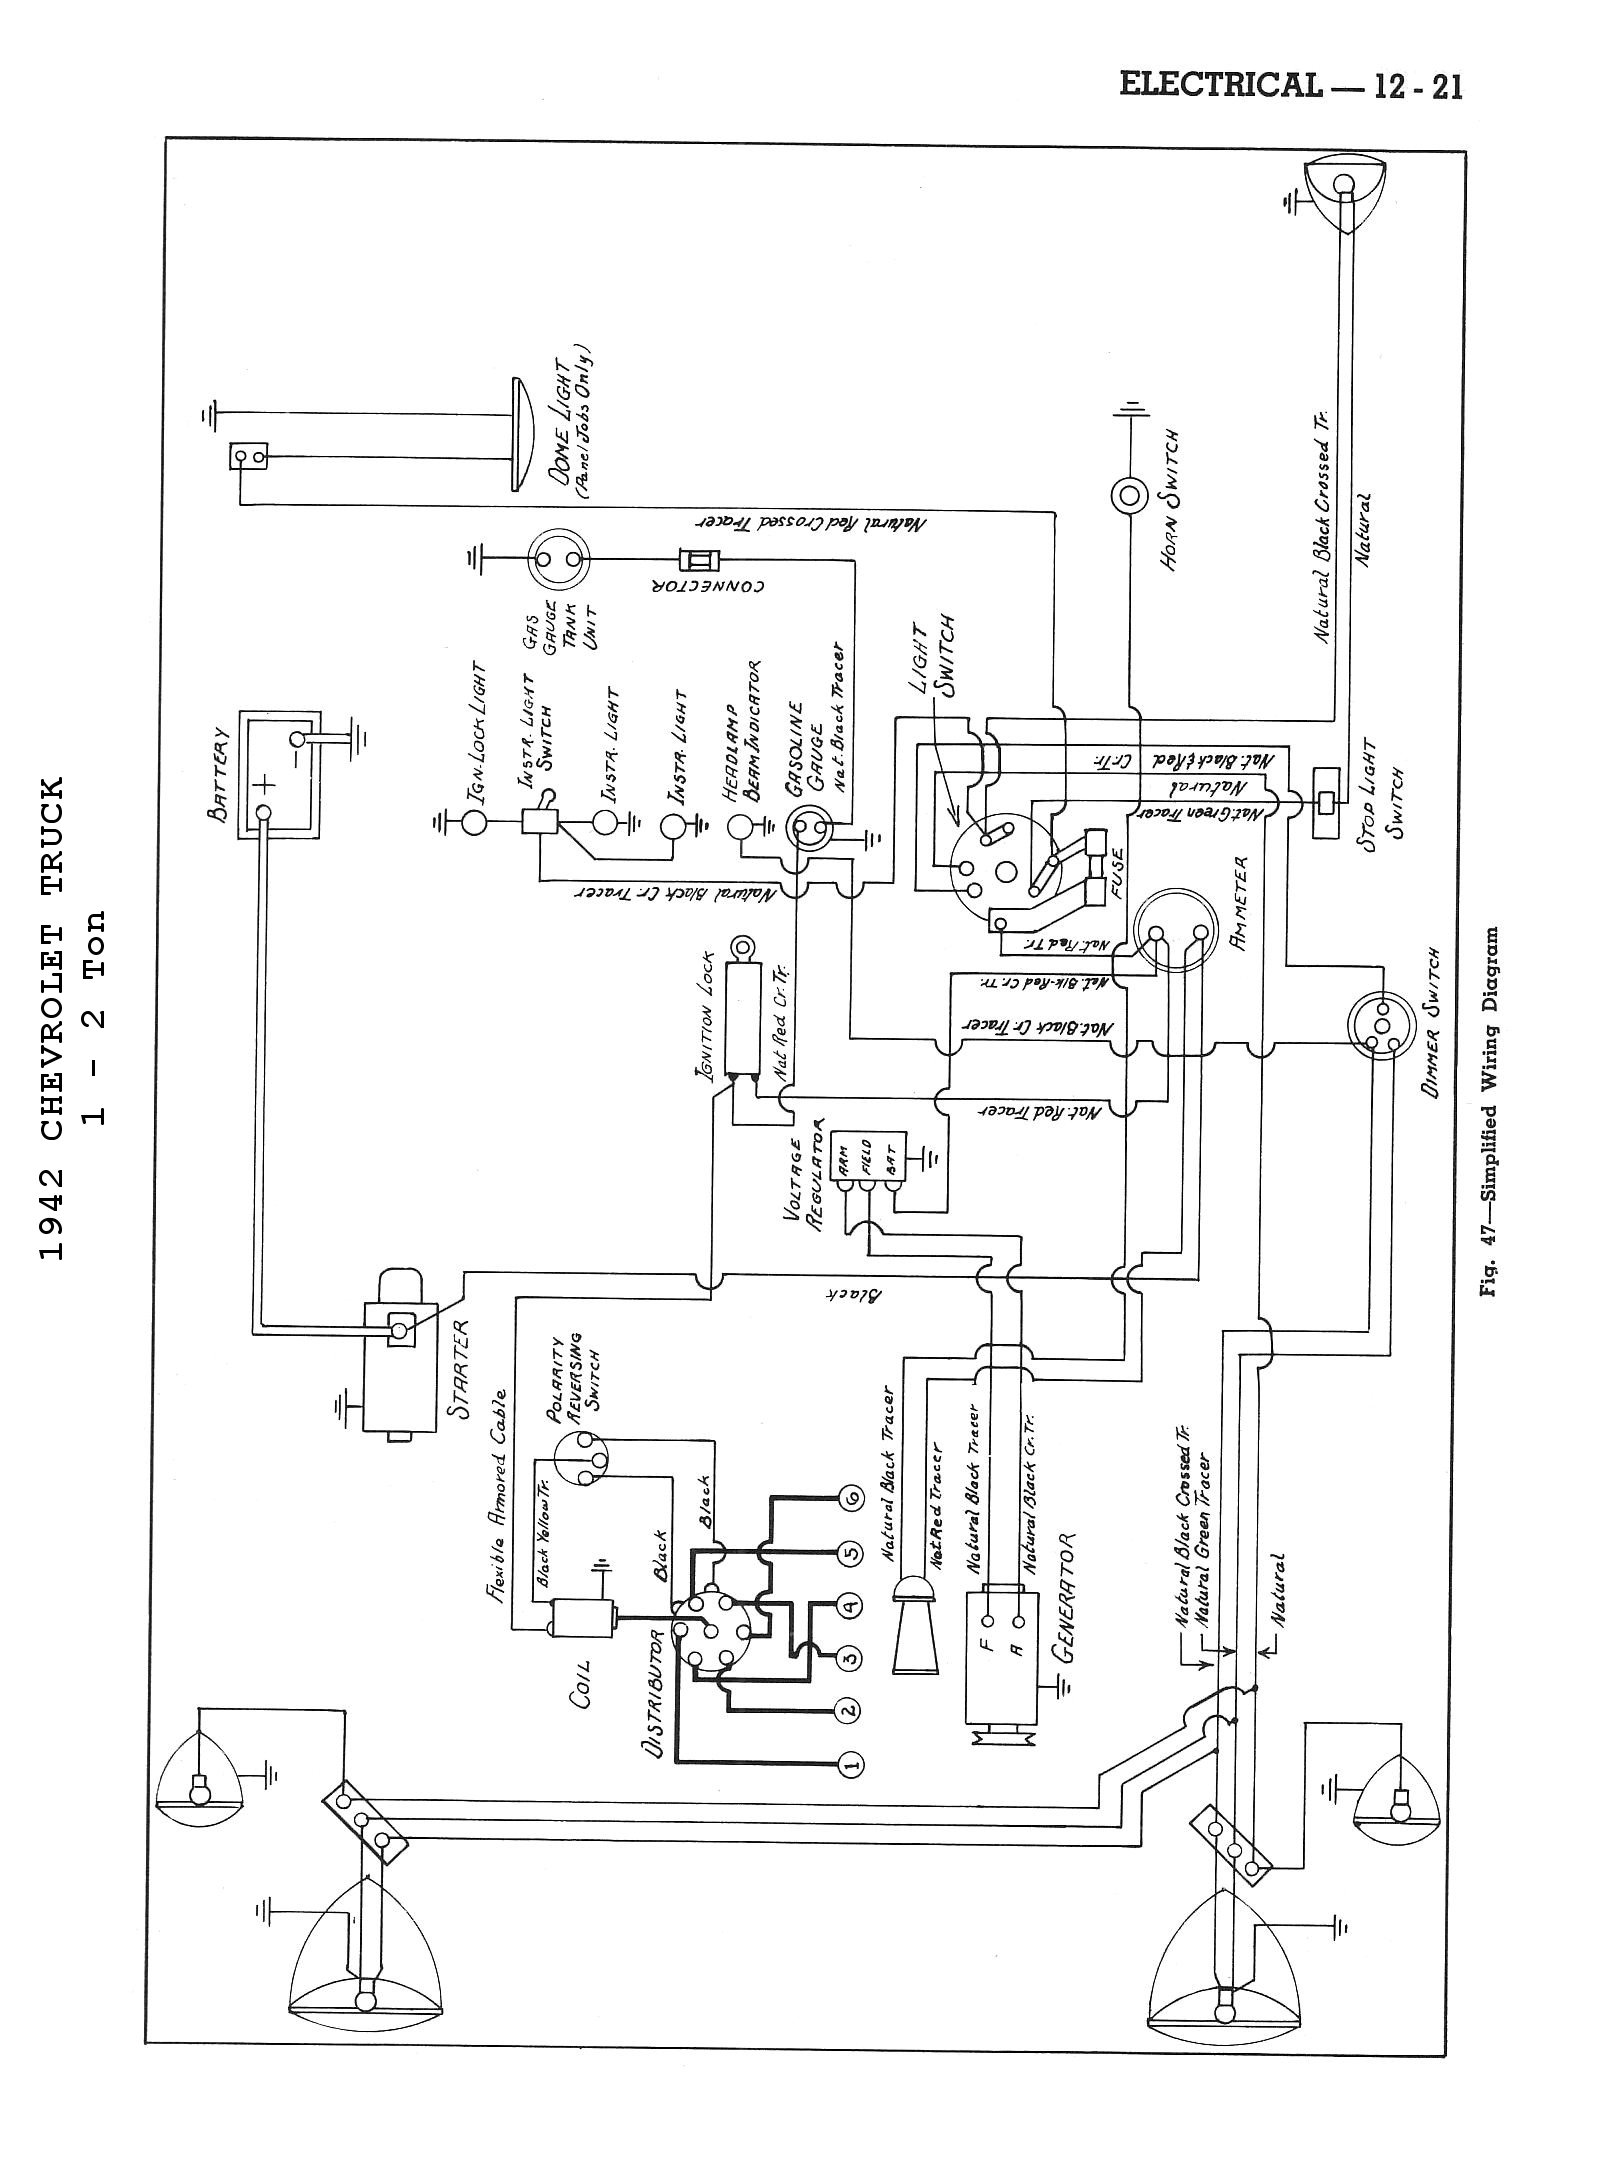 42cm4x2t1221 chevy wiring diagrams 1966 chevy truck turn signal wiring diagram at bakdesigns.co